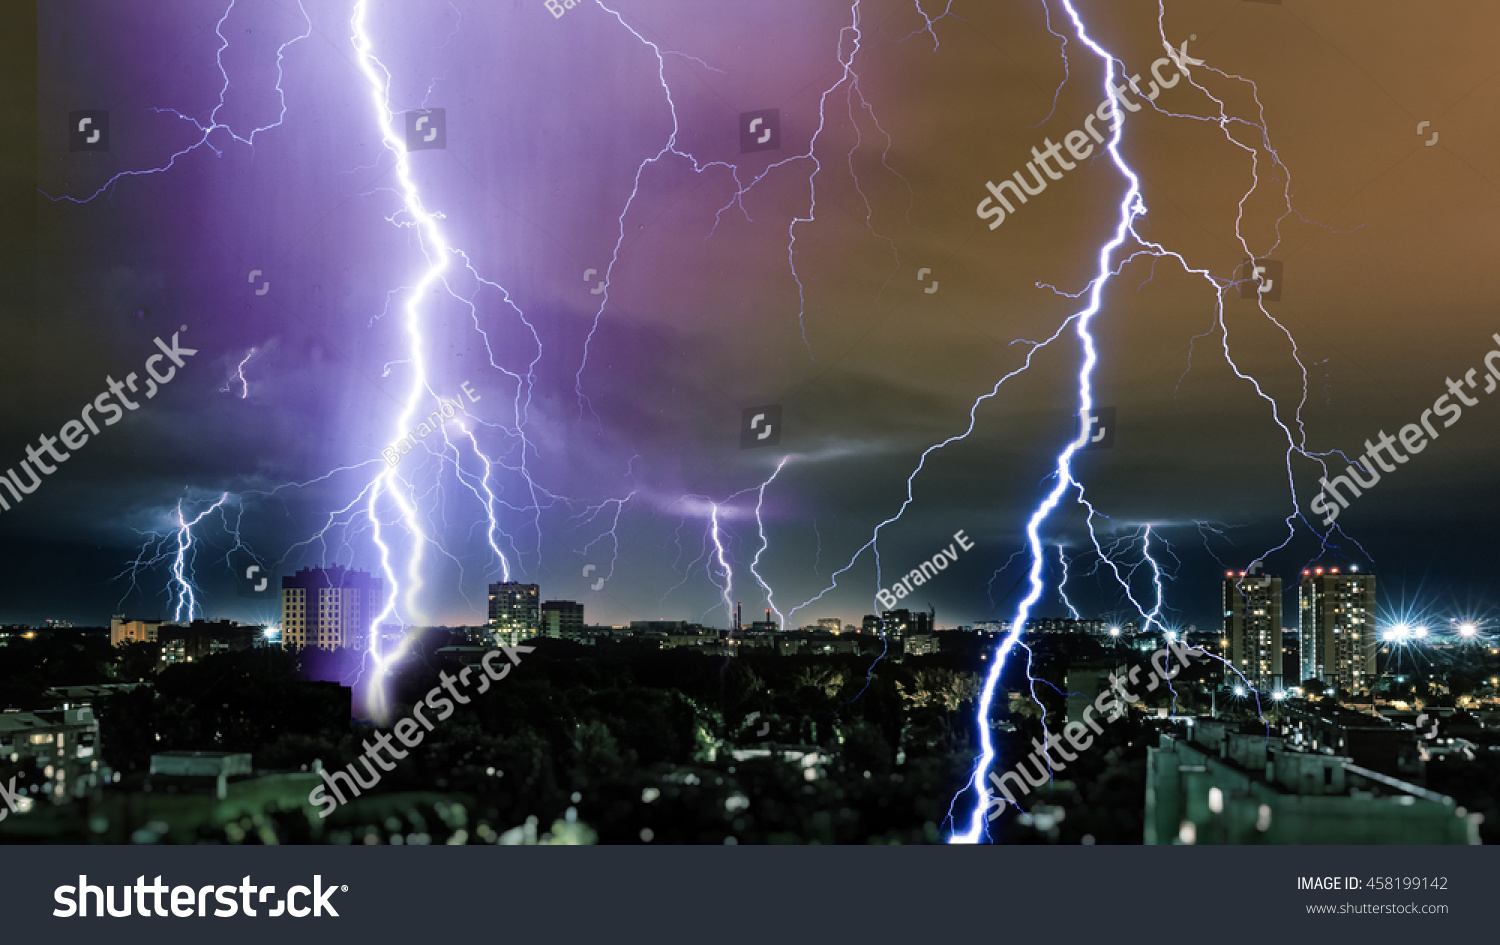 Lightning Storm Over City Thunderbolt 458199142